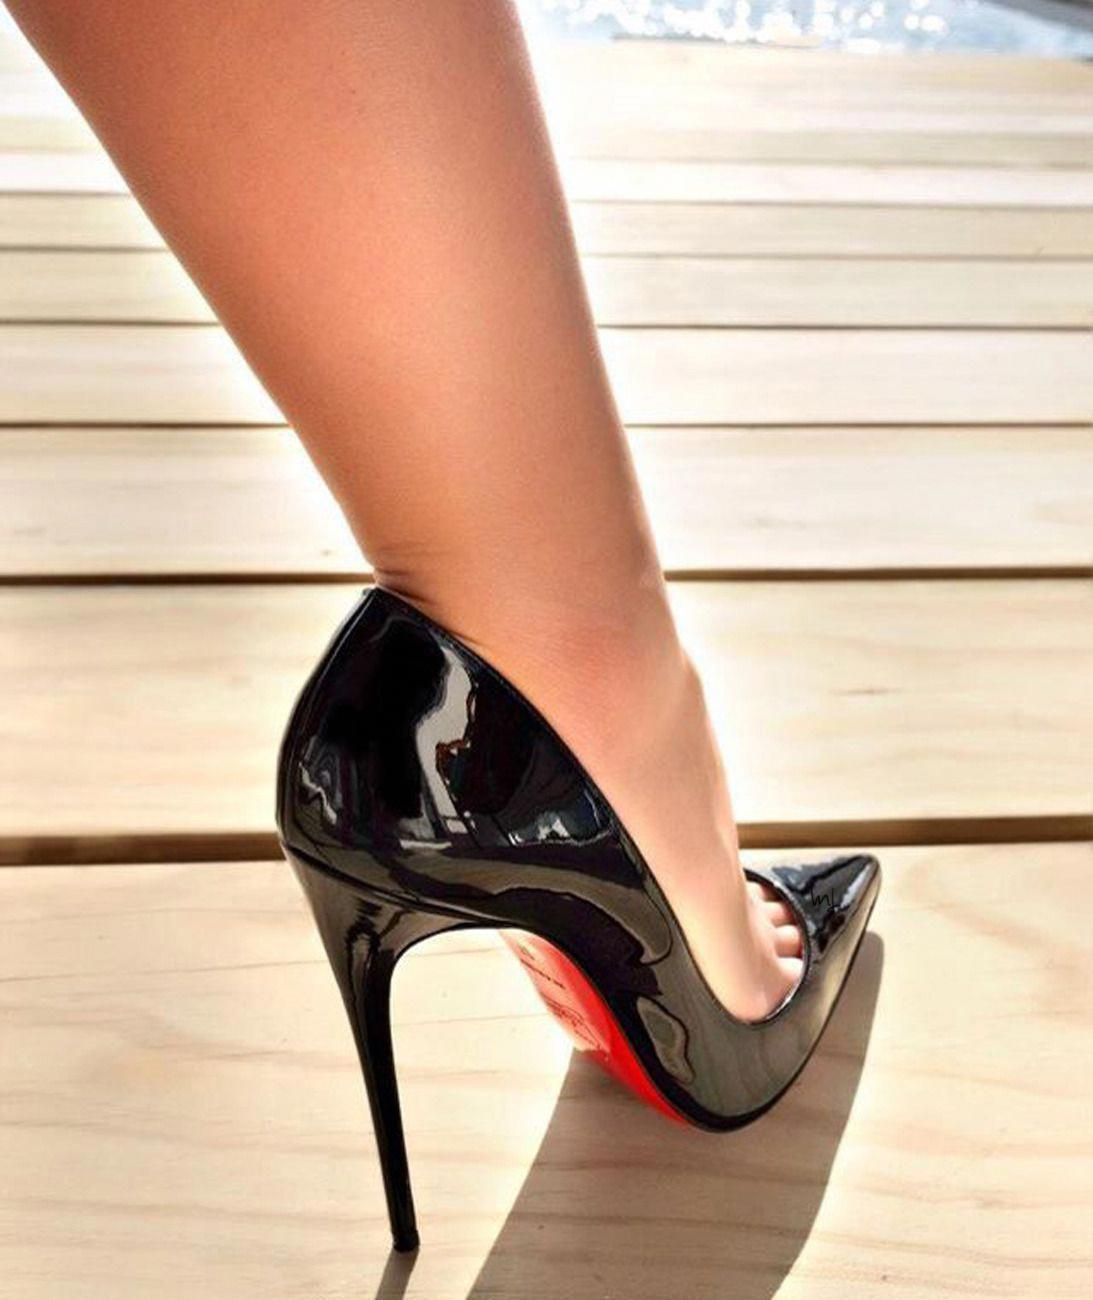 8a7ed9aee4c571 are feet in very high black stilettos